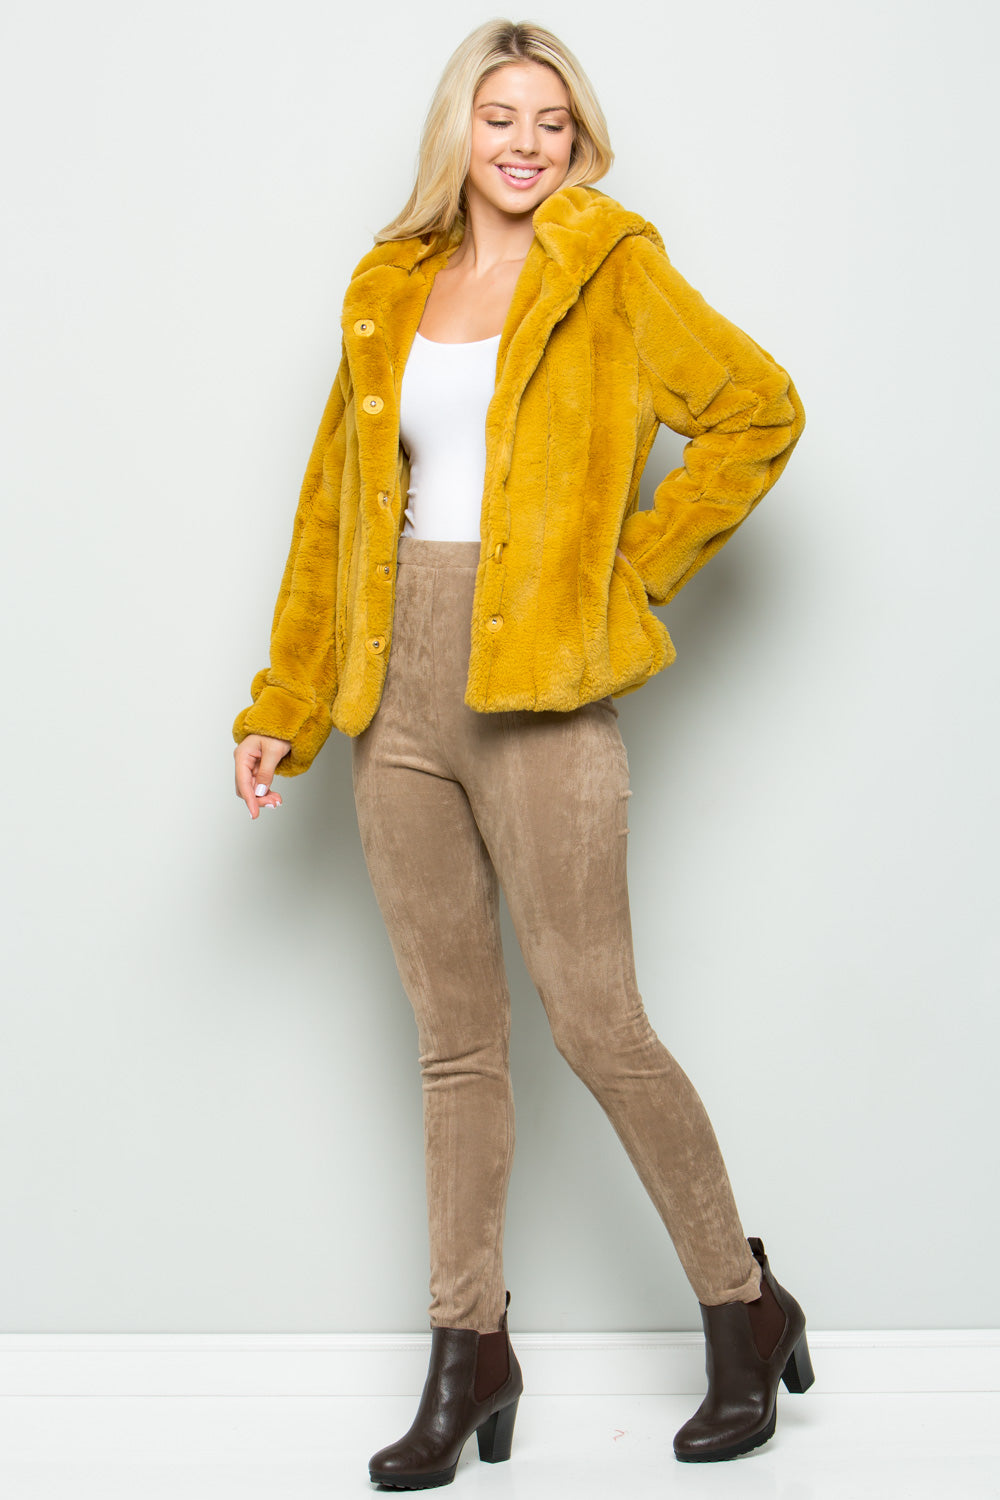 T2585 Hooded Soft fur Jacket - Mustard